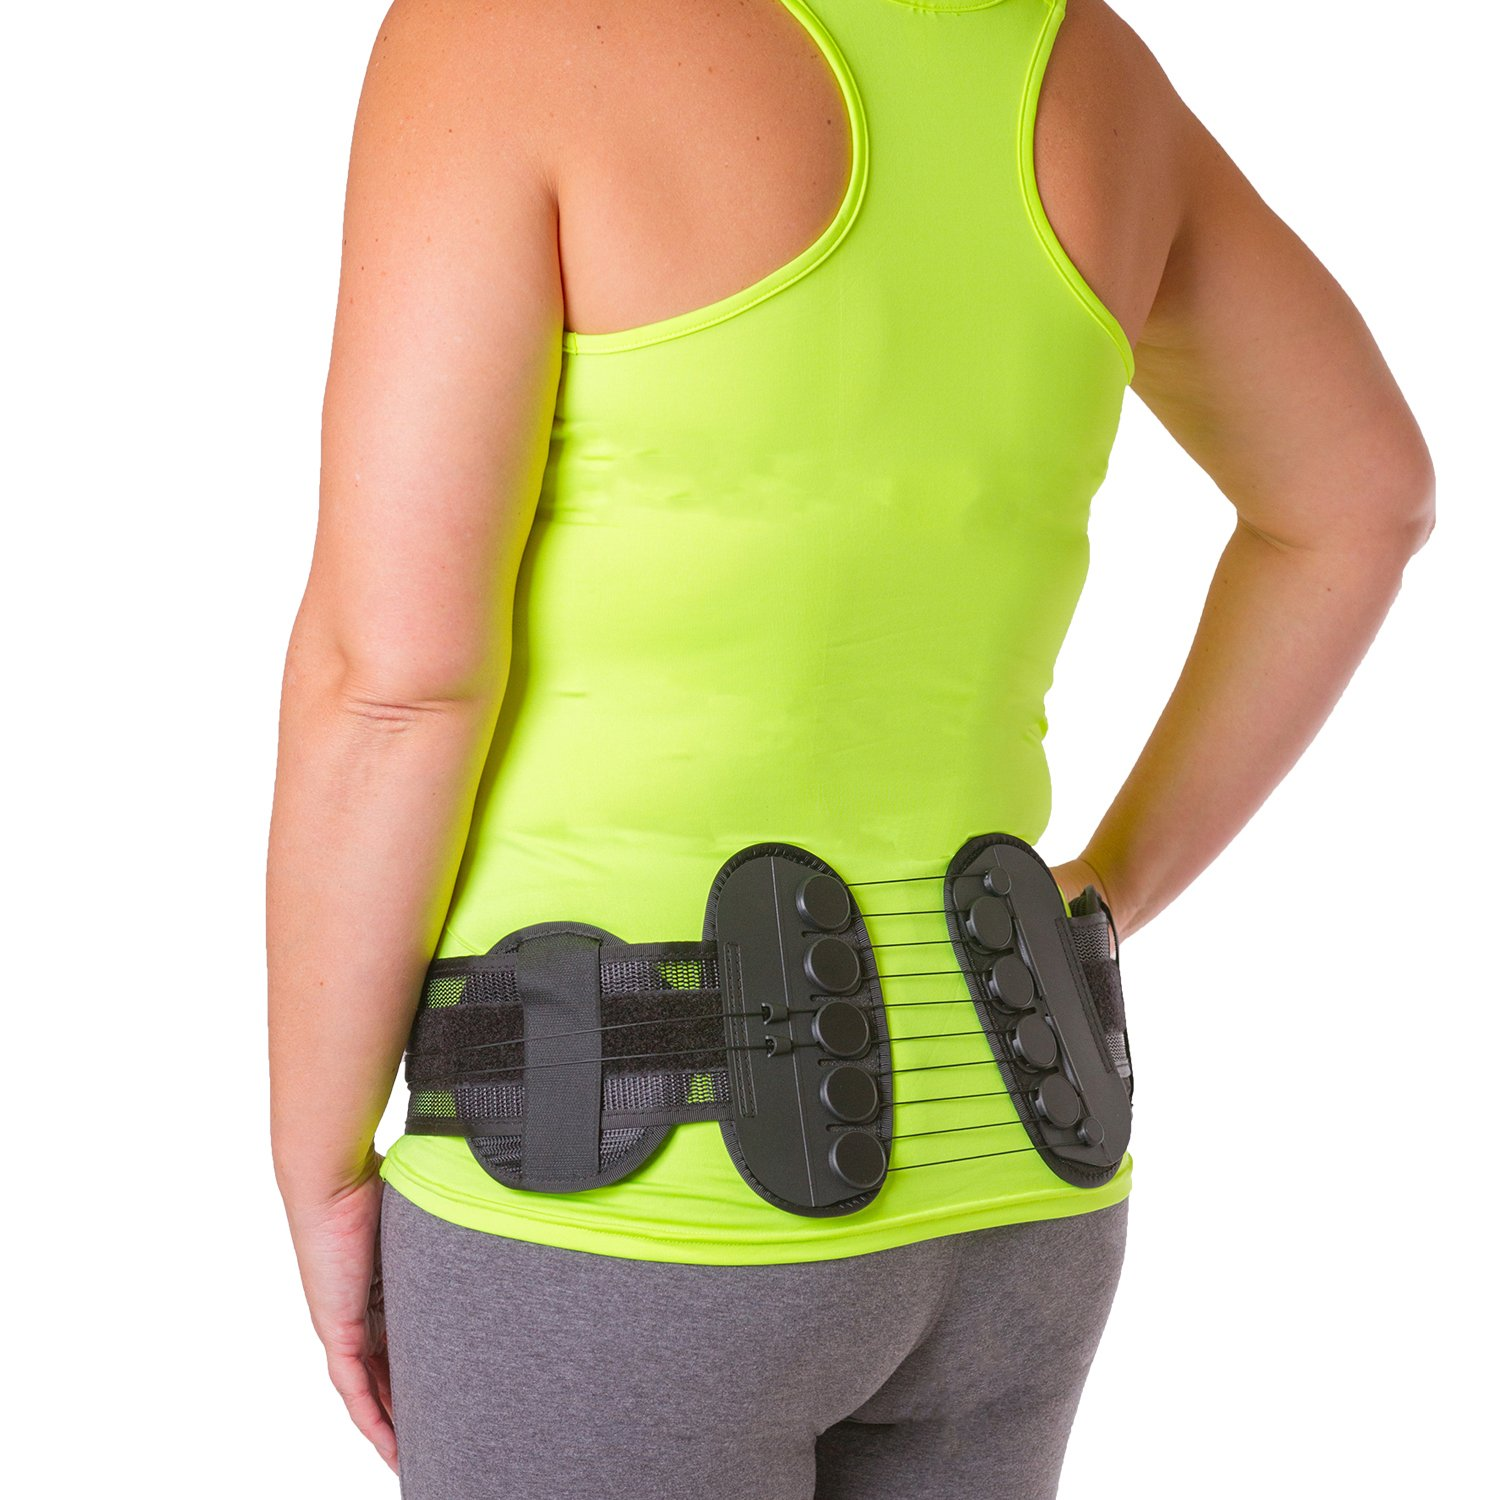 Sacroiliac Compression Brace | SI Joint Pain Relief Belt with Hip Support Pads for Bruised / Broken Tailbone Pain and Coccyx Injuries (One Size - Fits Women & Men with 32'' - 50'' Hips)